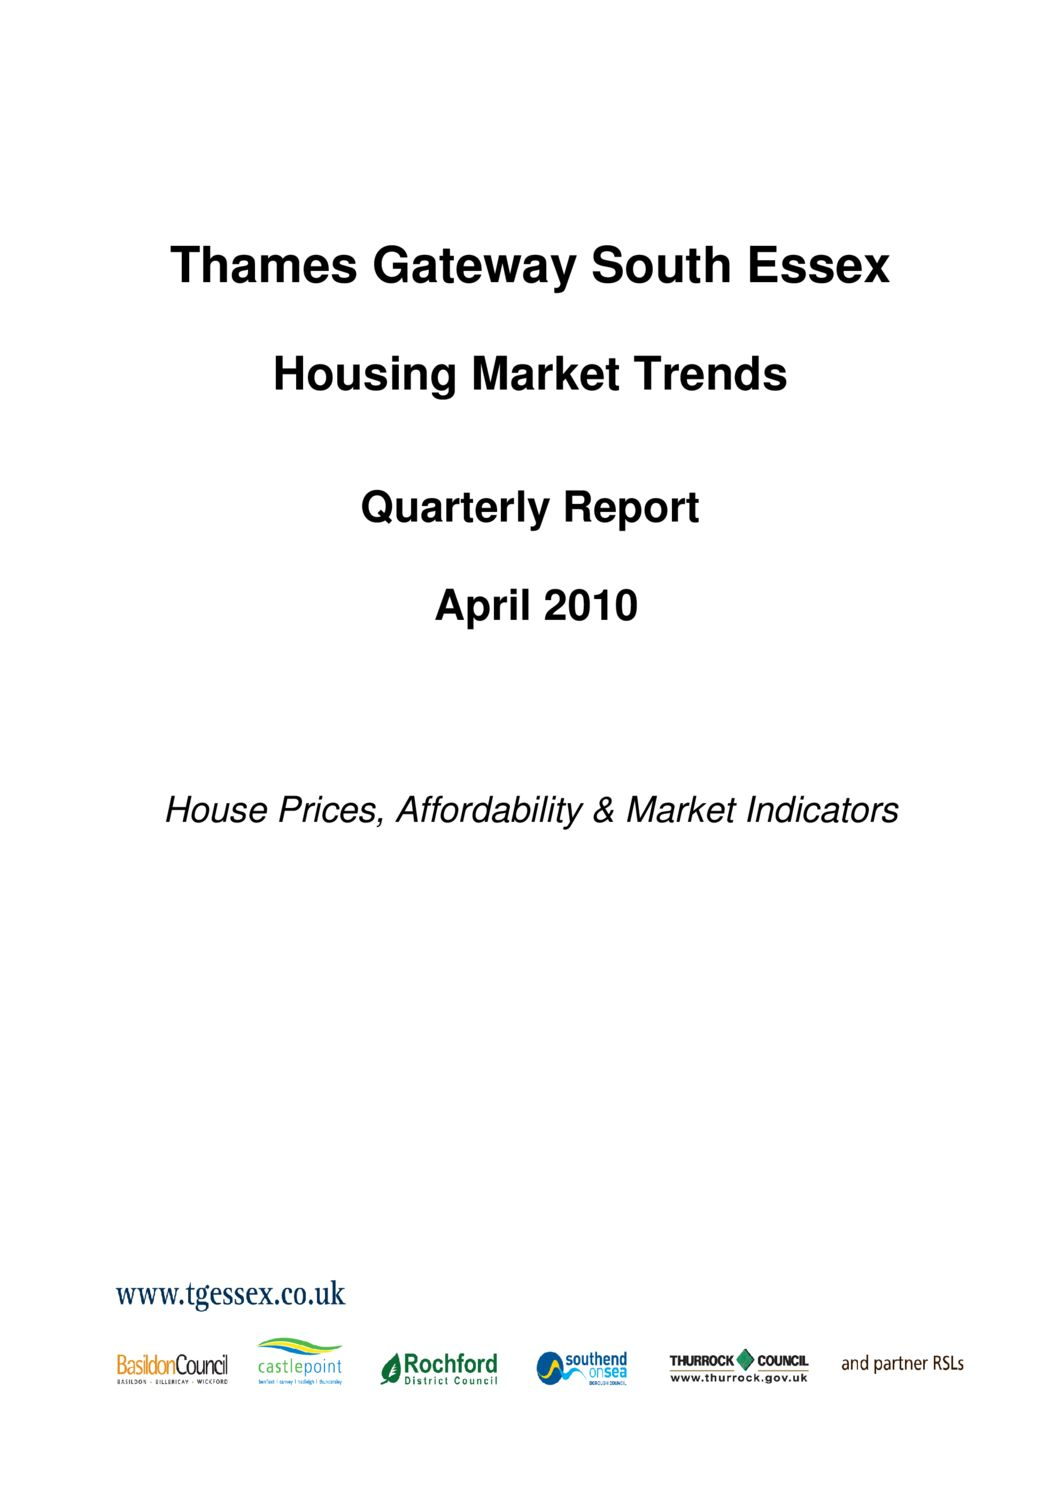 SE Housing Market Trends Quarterly Report April 2010